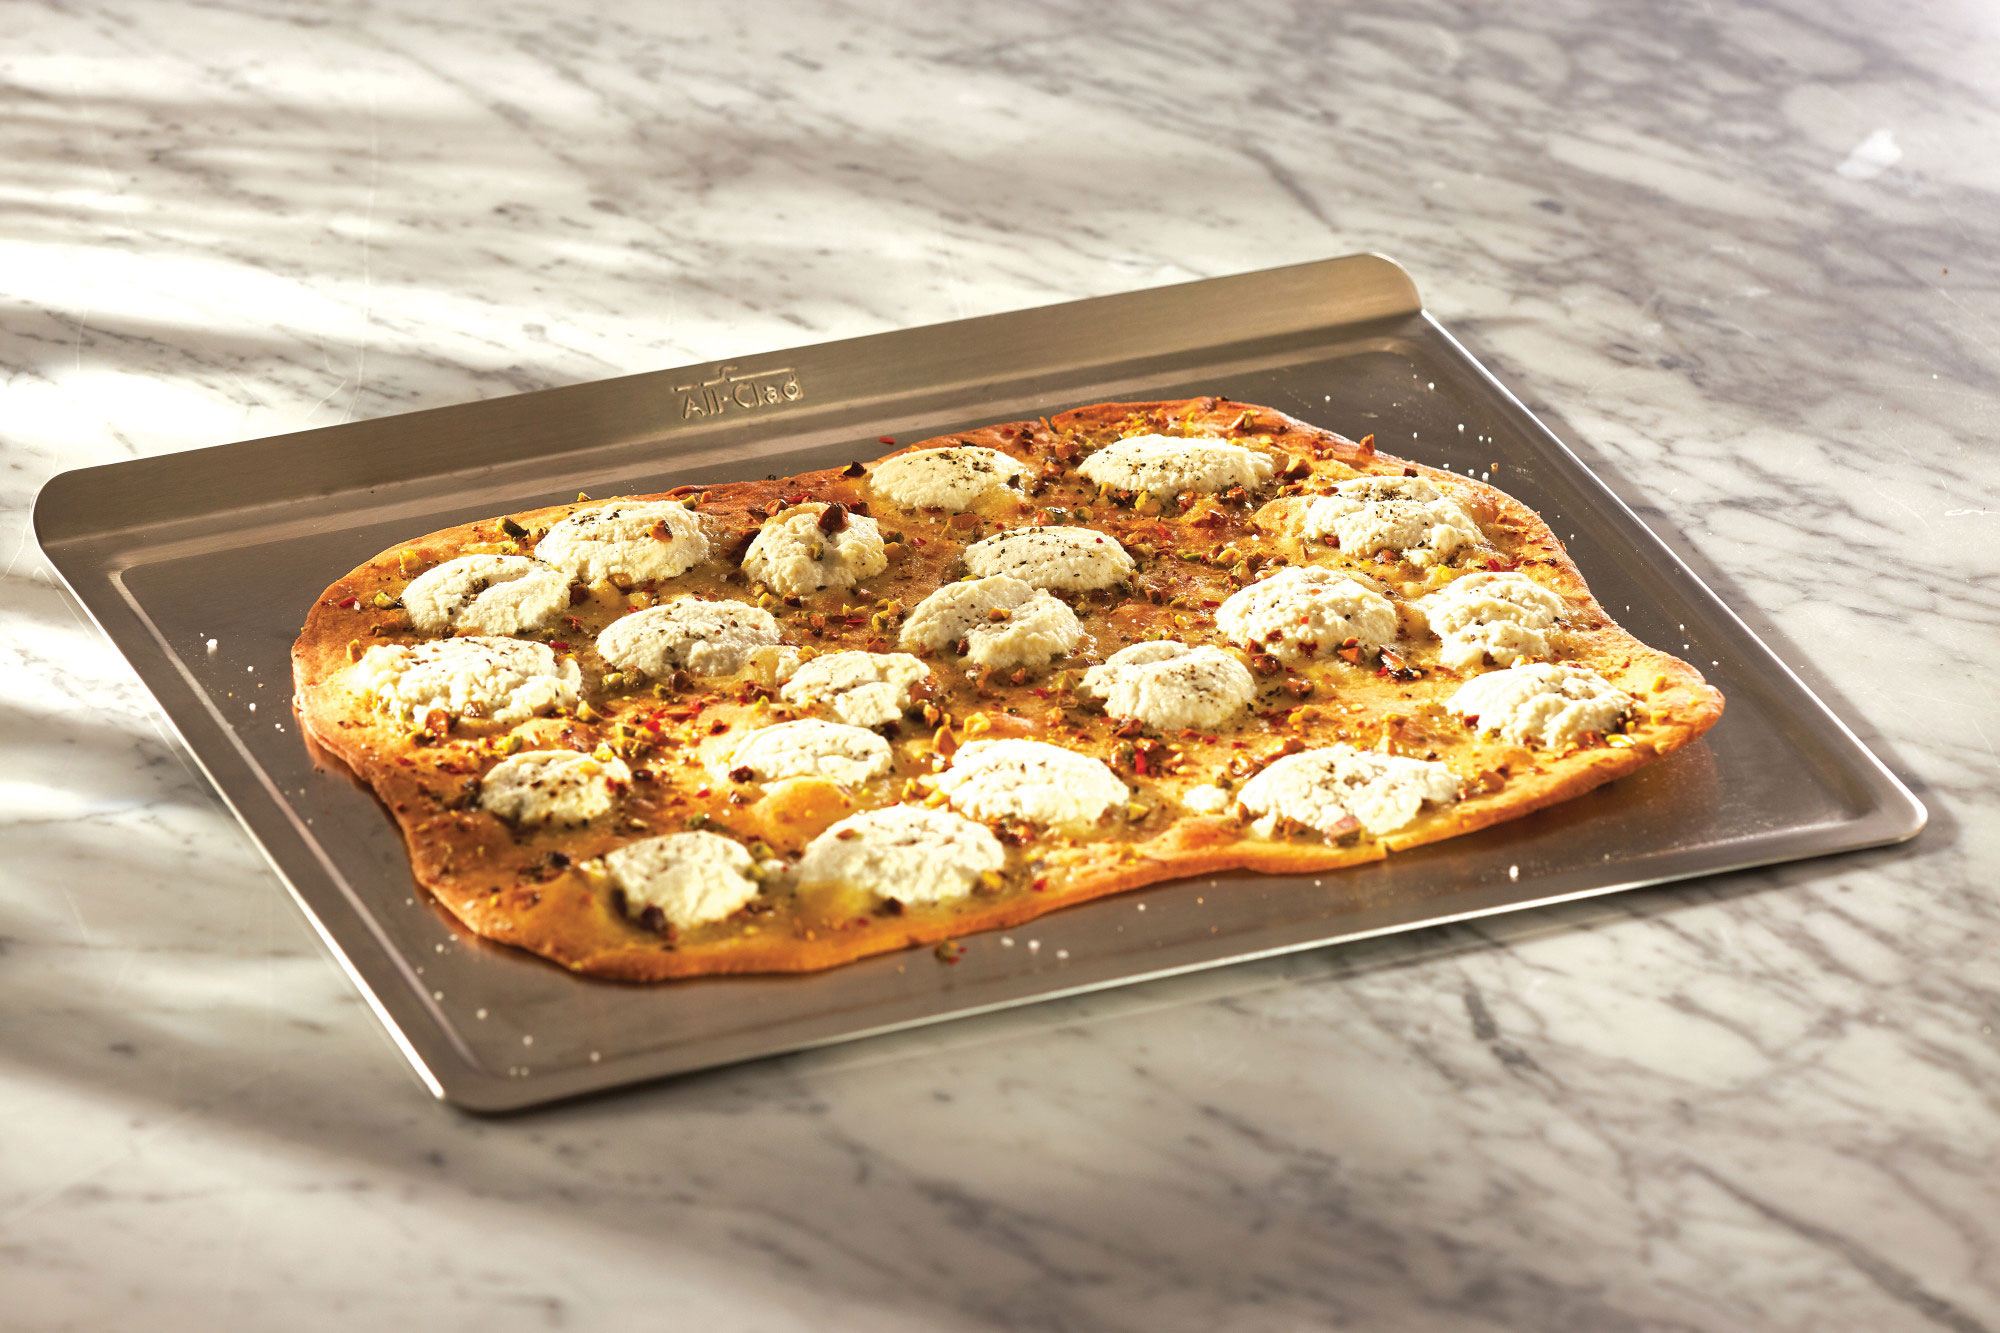 All Clad Stainless Tri Ply Stainless Steel Baking Sheet